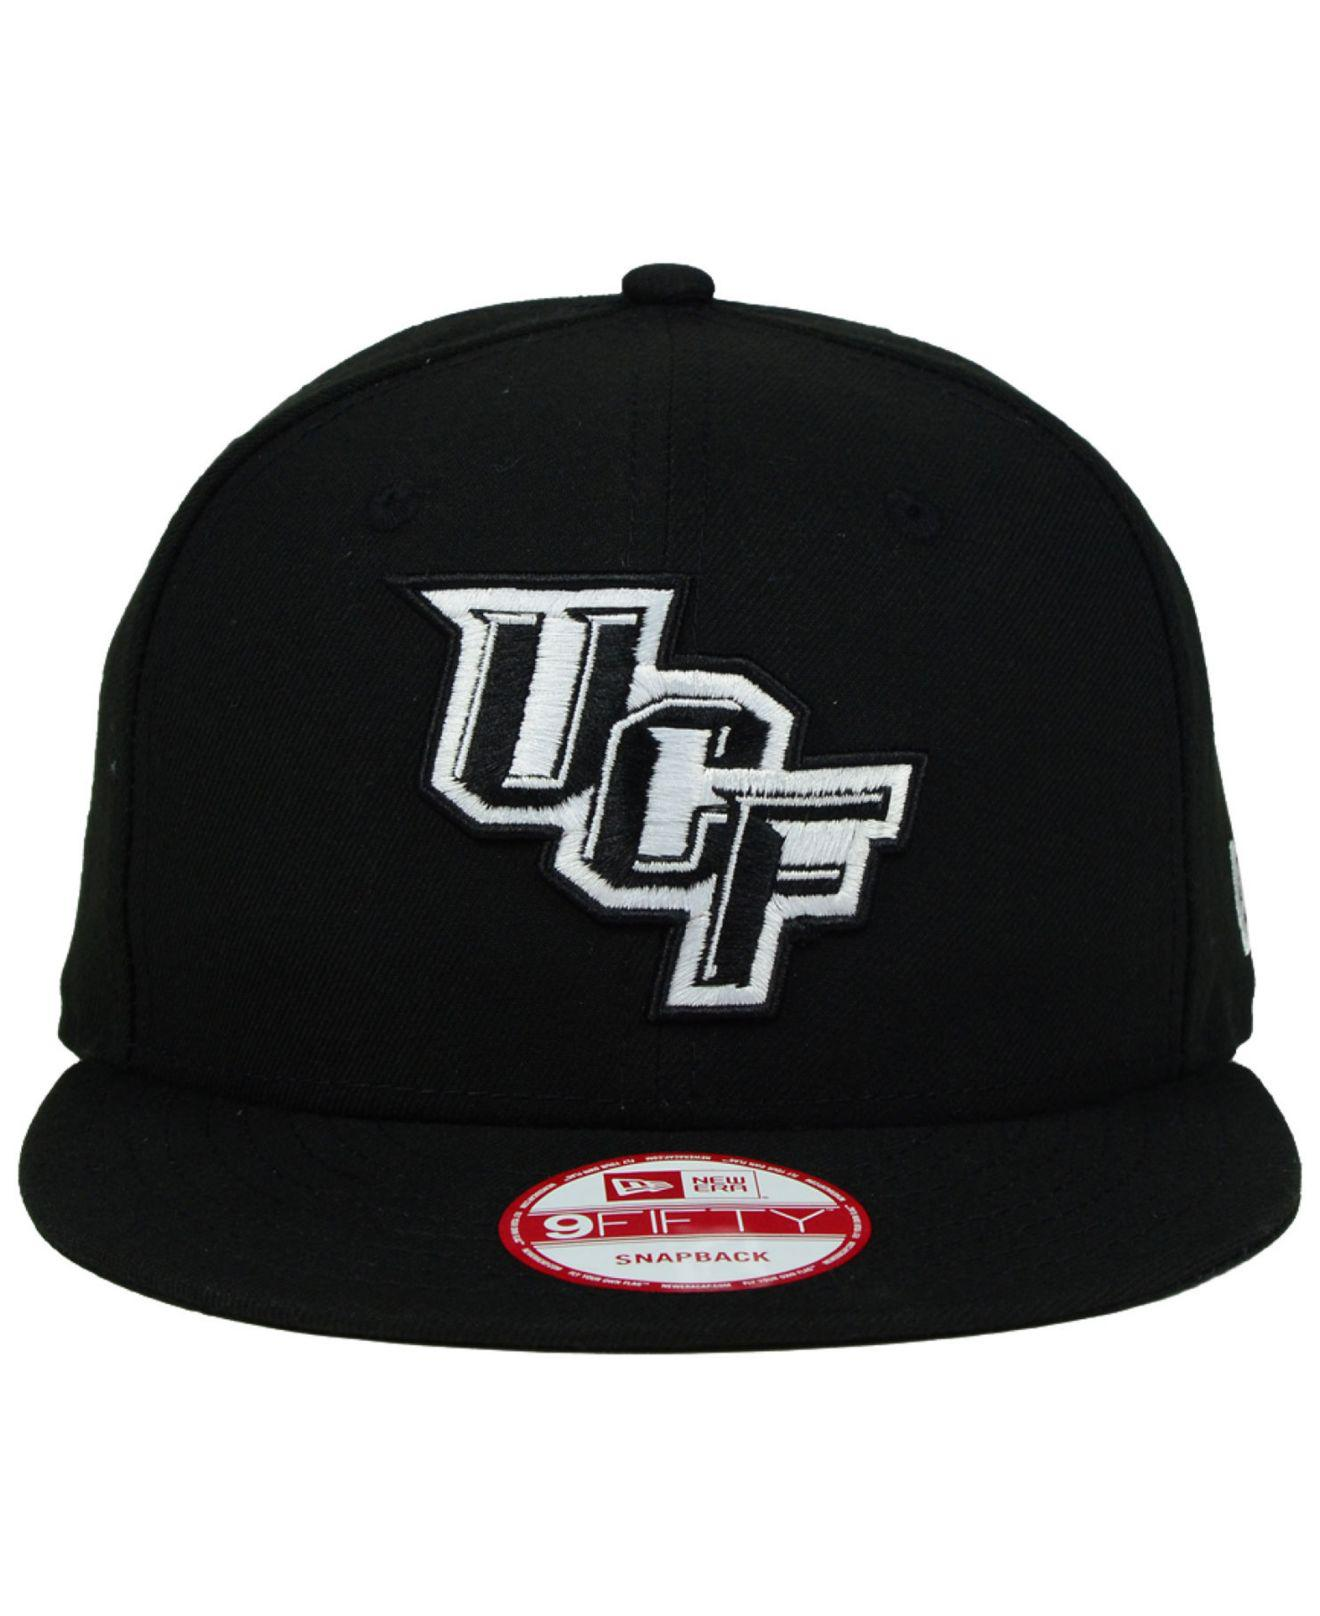 be60bf4c85f89 ... switzerland lyst ktz ucf knights black white 9fifty snapback cap in  black for men c539e b83b7